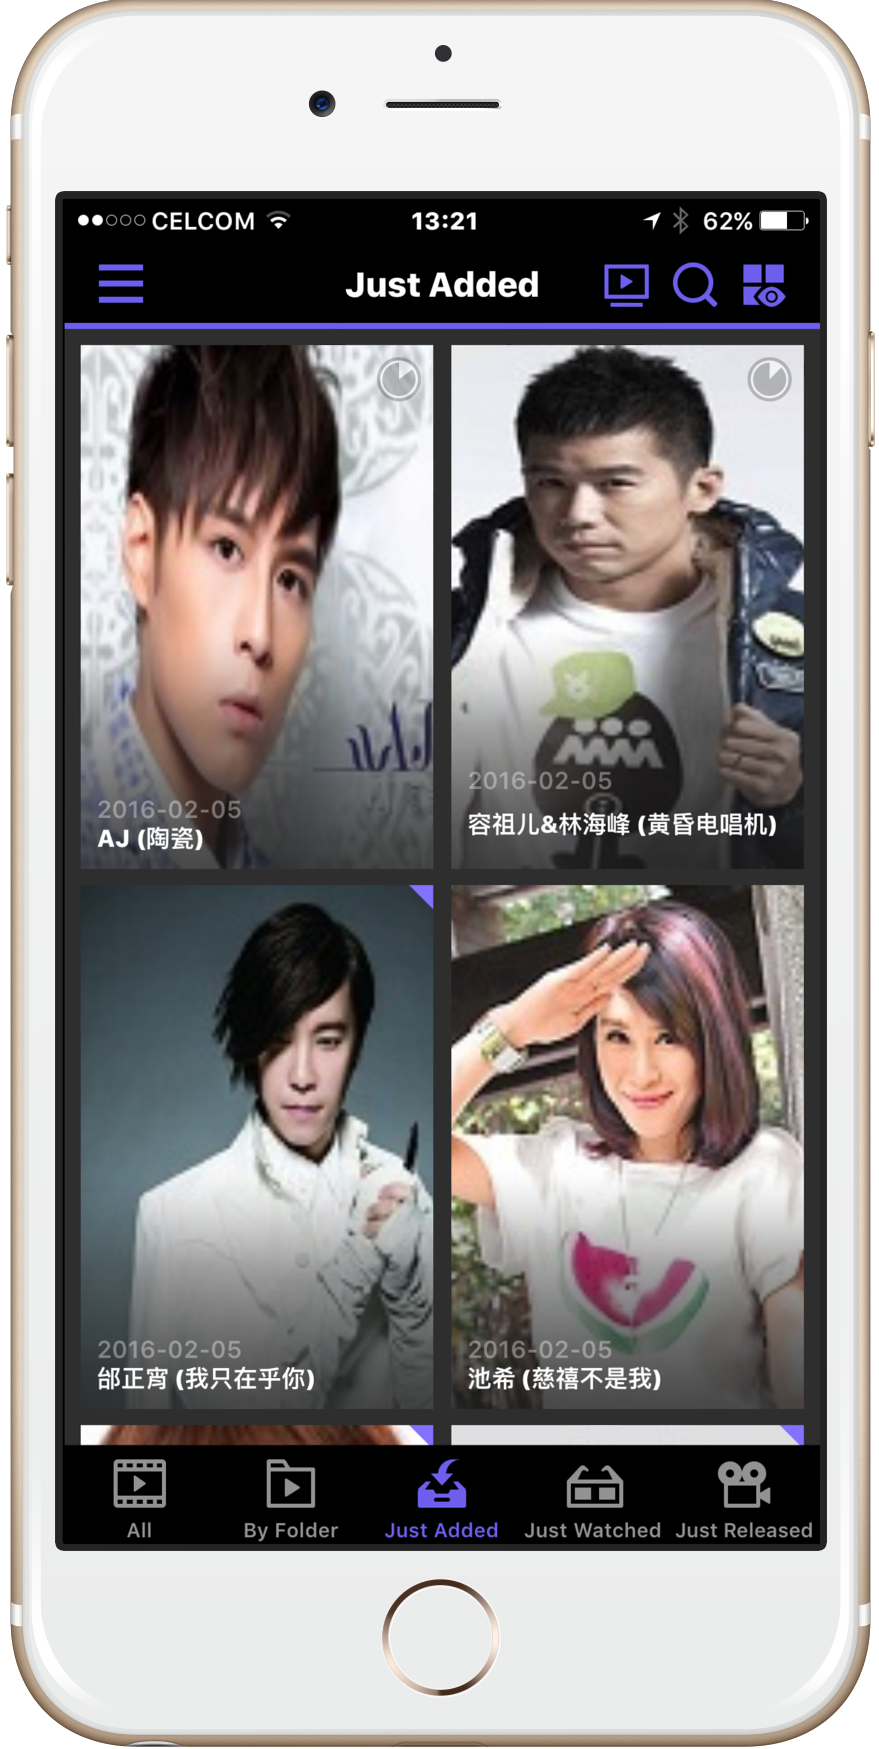 Search by Just added 最新添加搜索